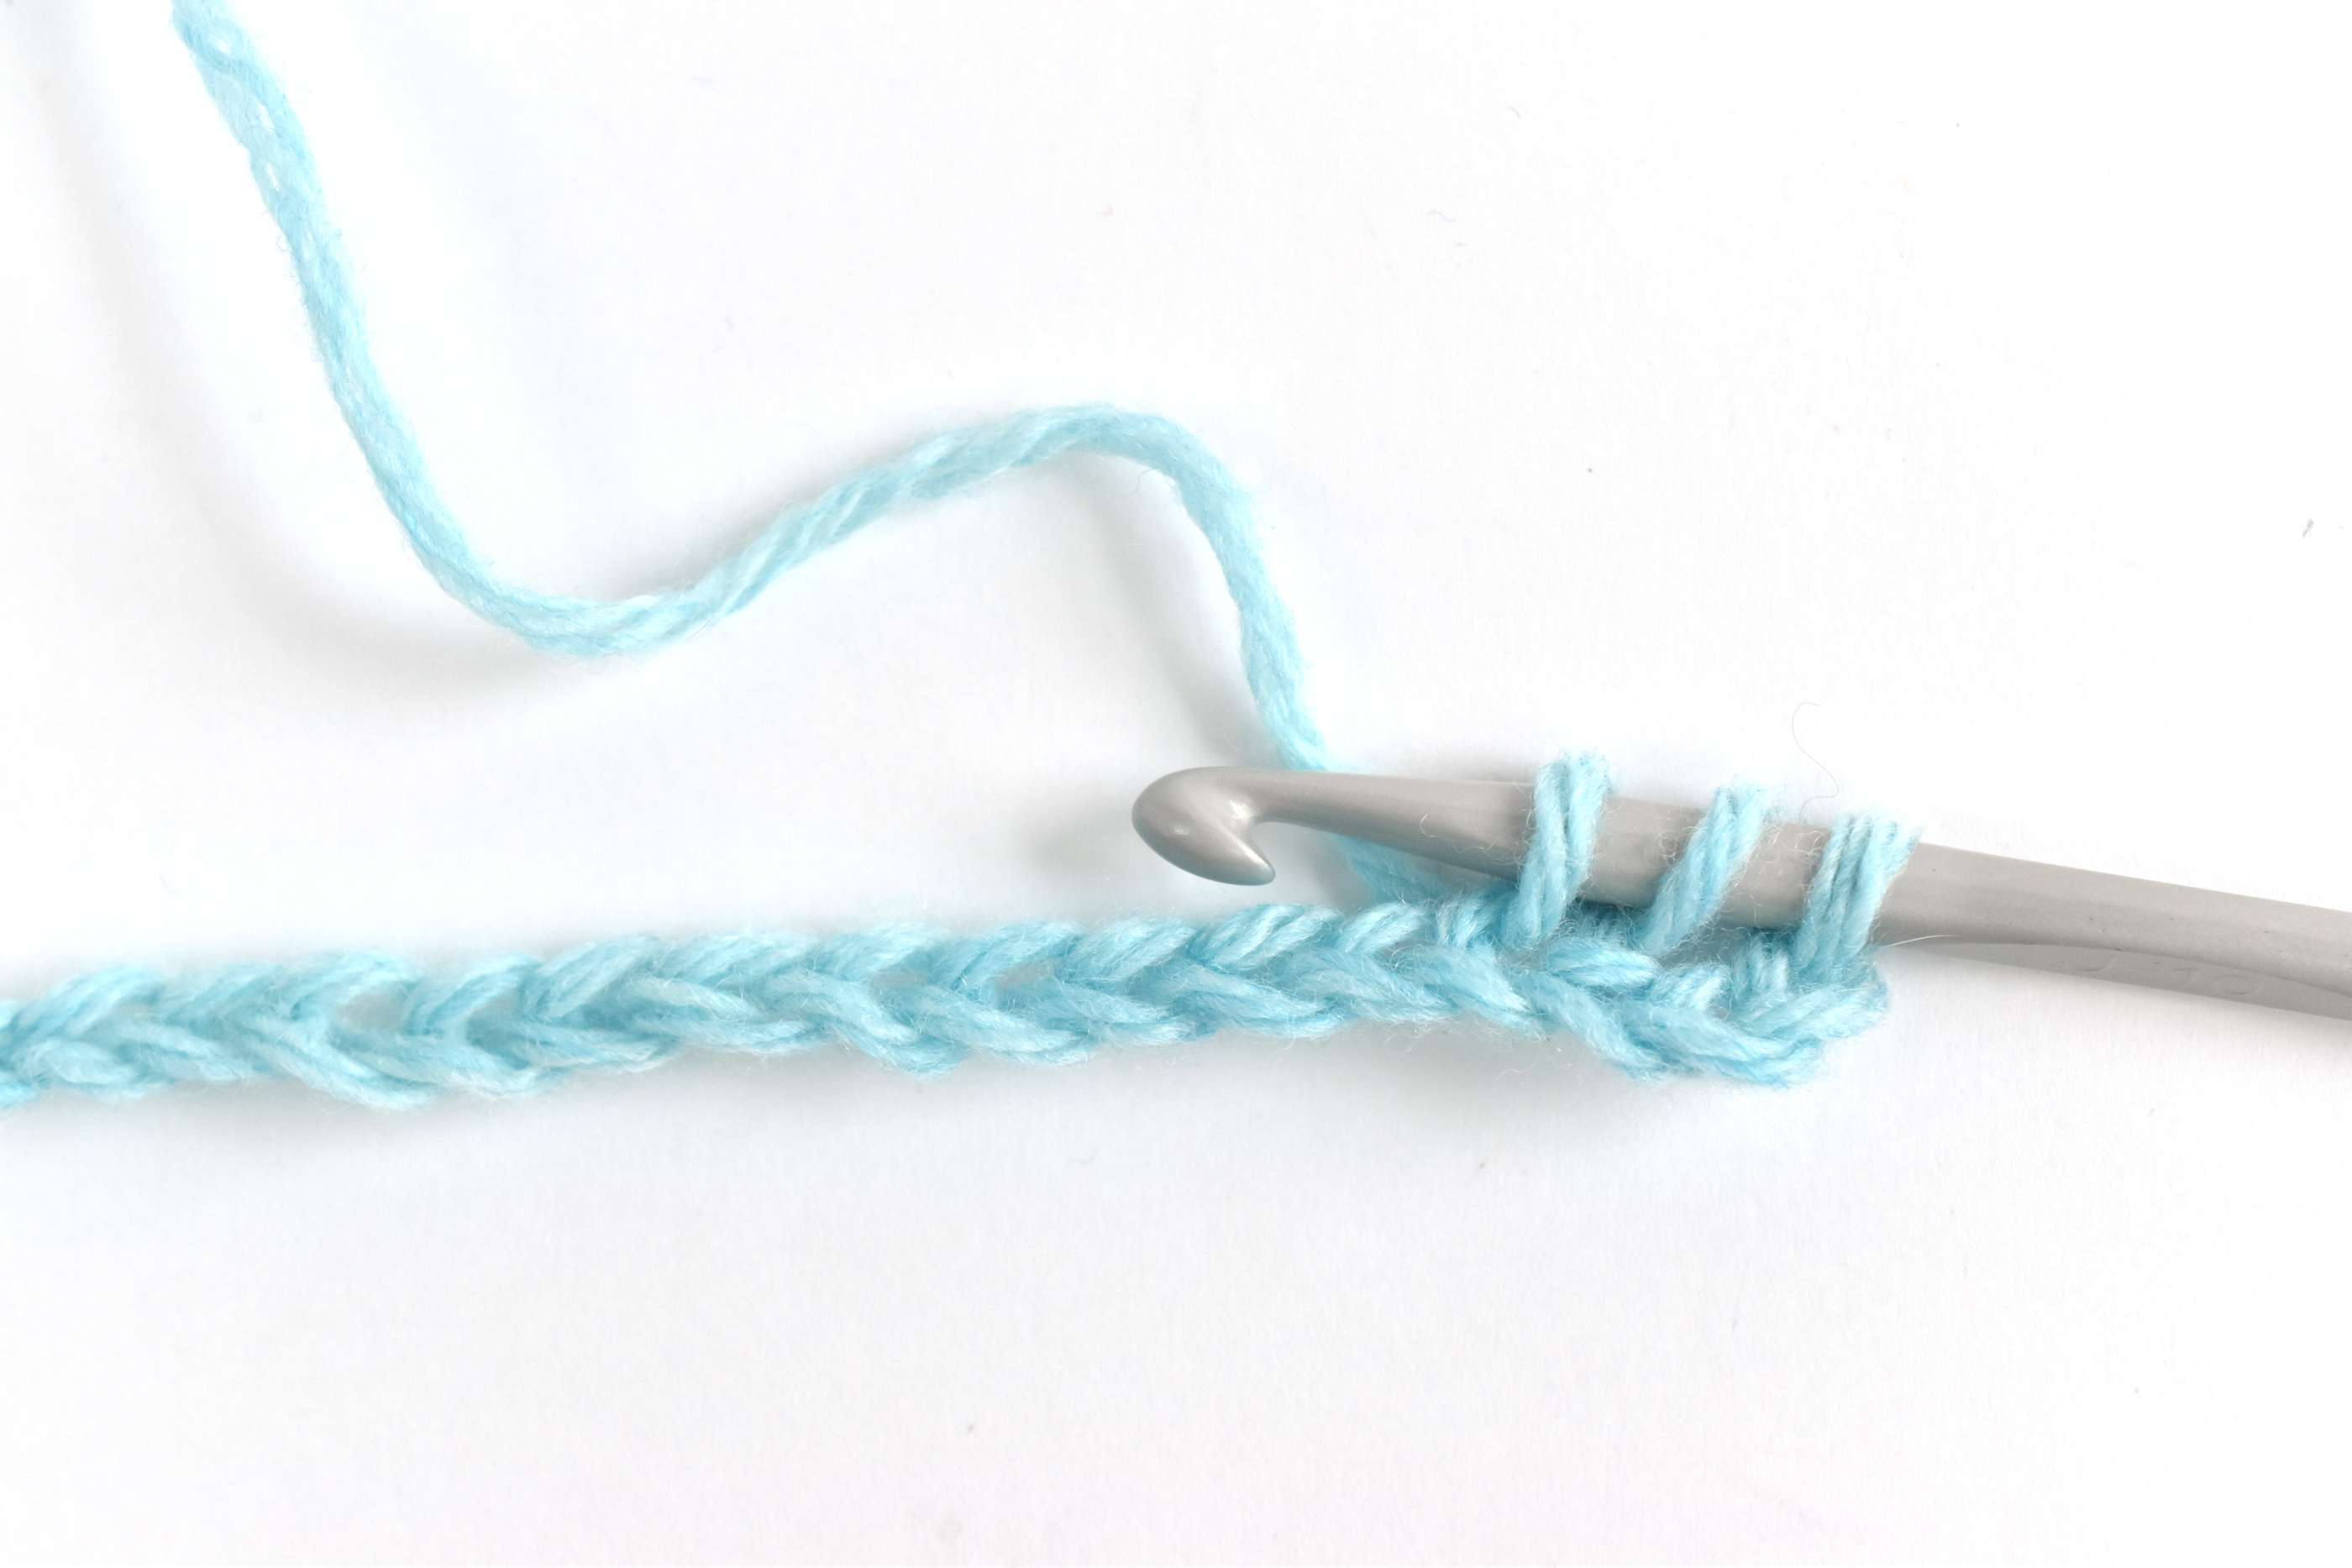 Start a HDC in the 4th Chain From the Hook